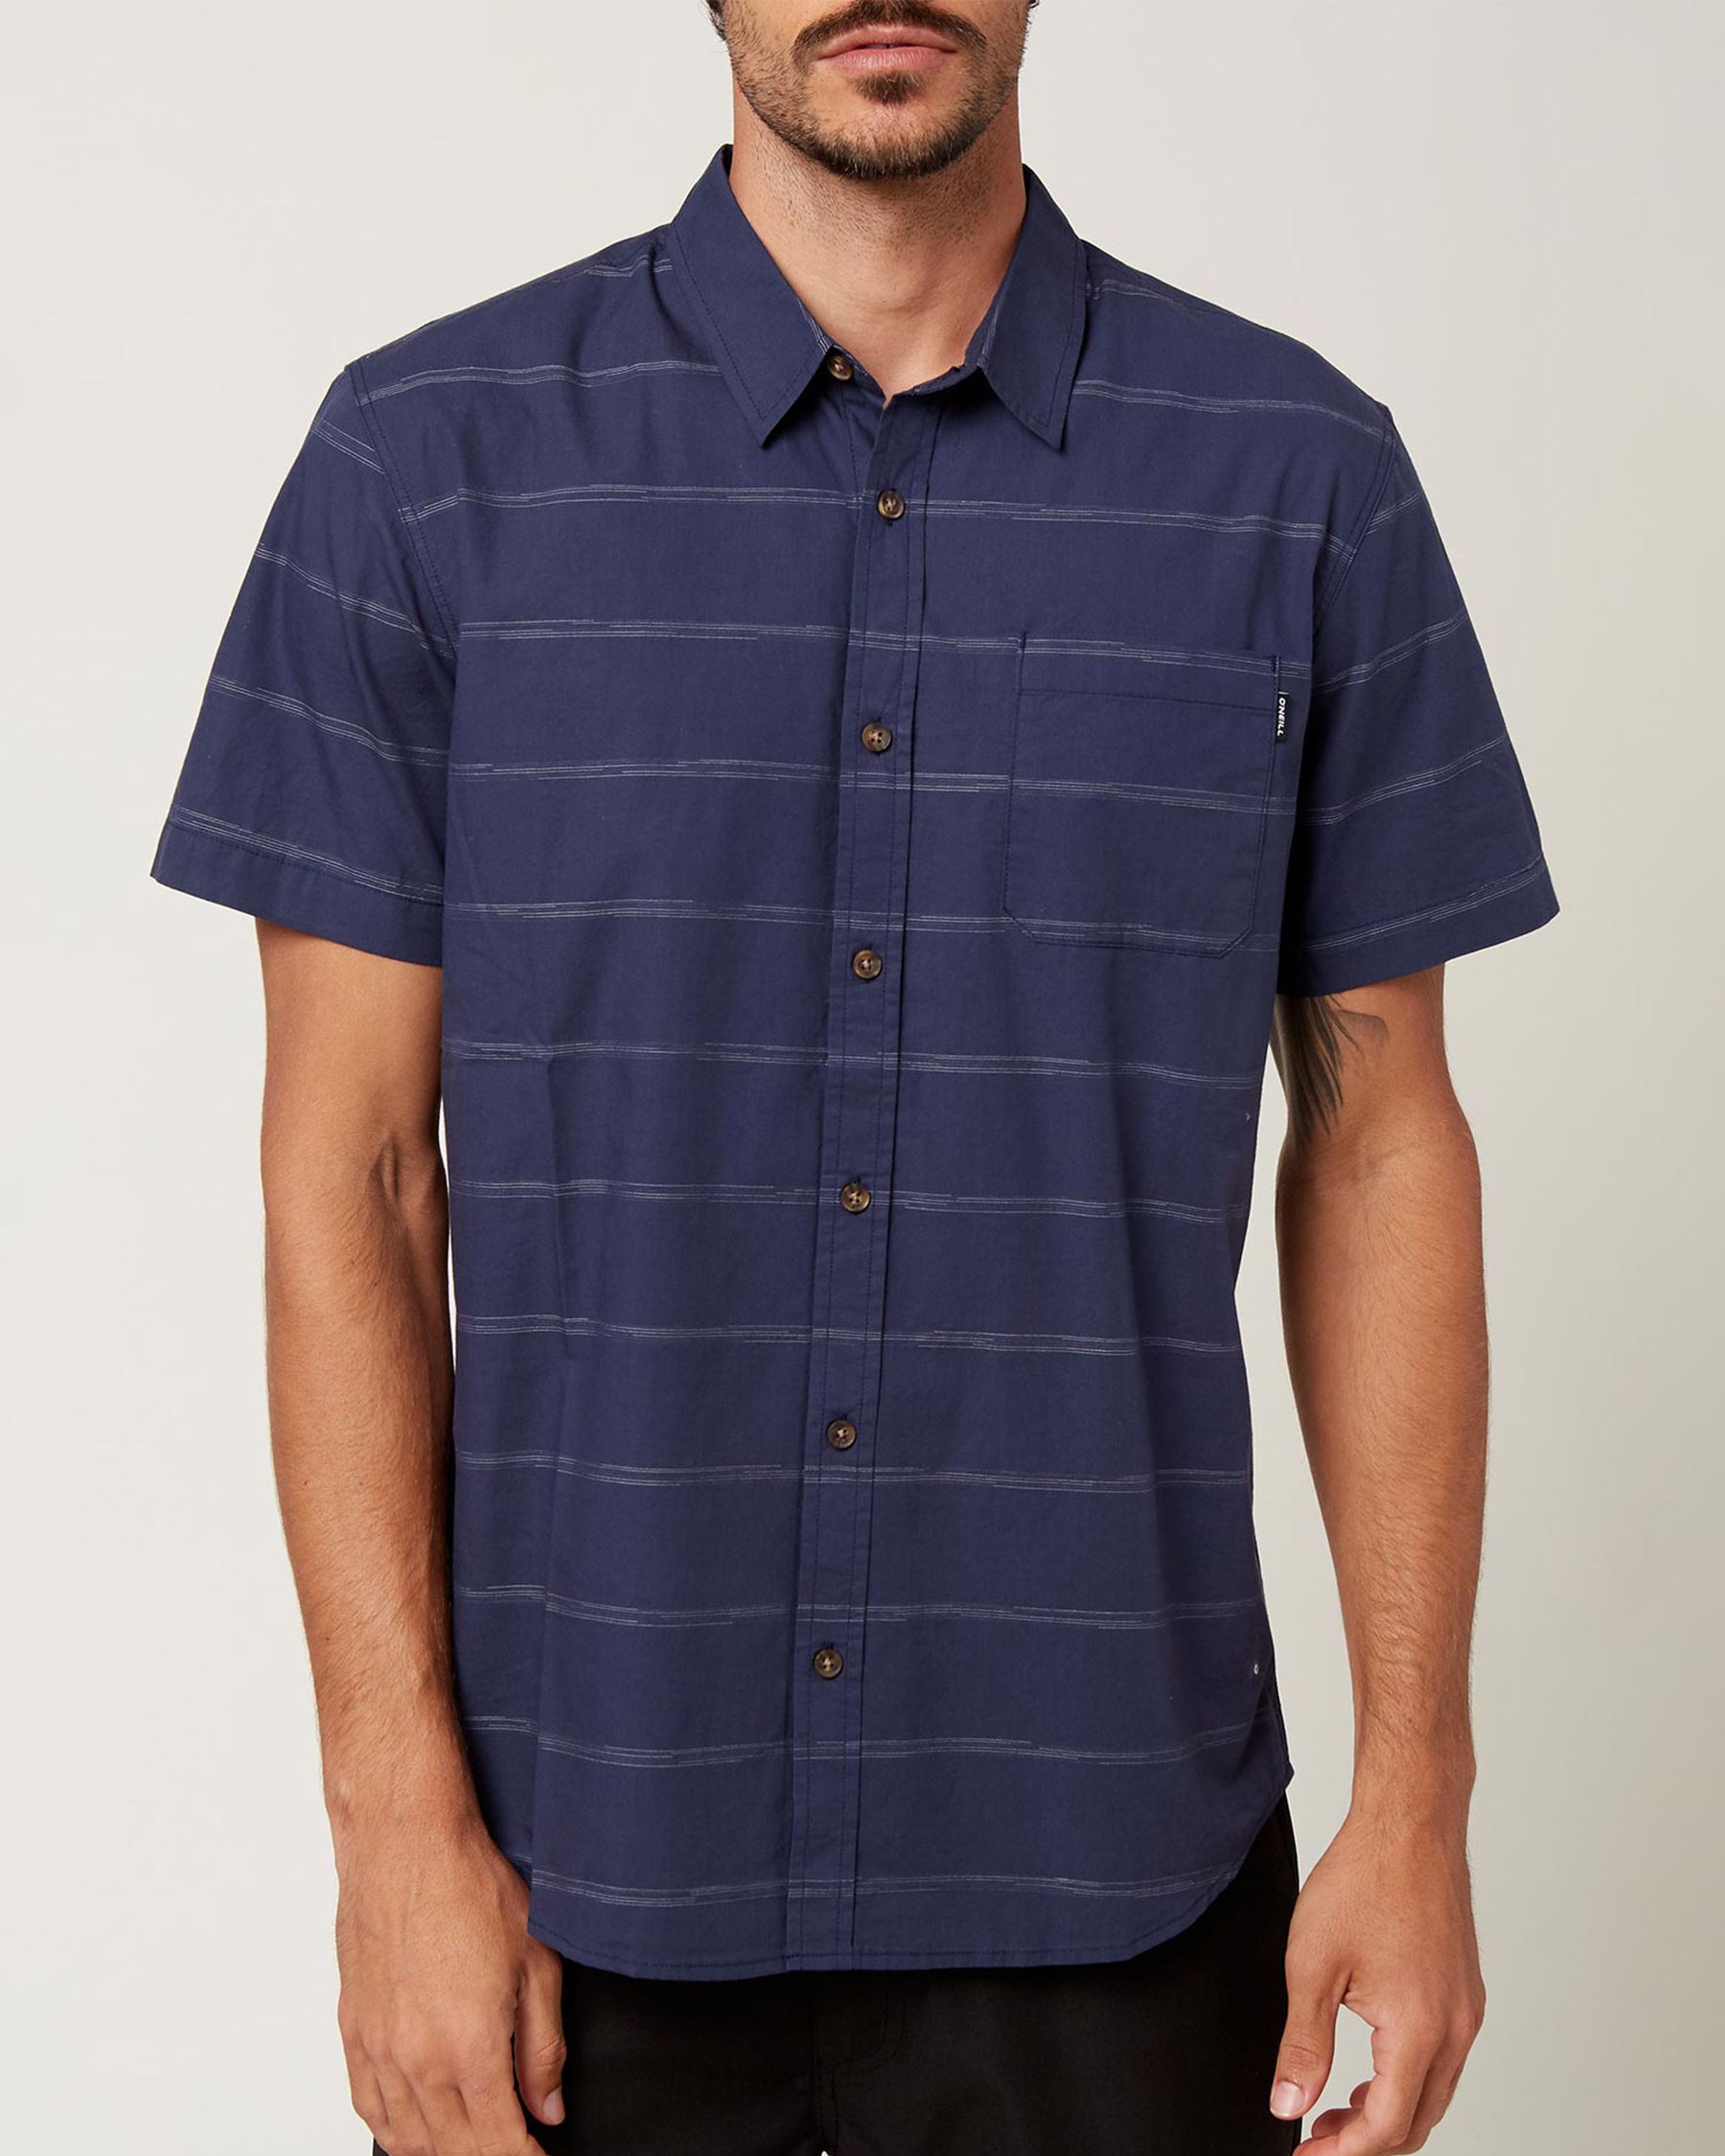 O'NEILL Chemise manches courtes IMPERIAL STRIPE Rayures marines SP1104110 - Voir1